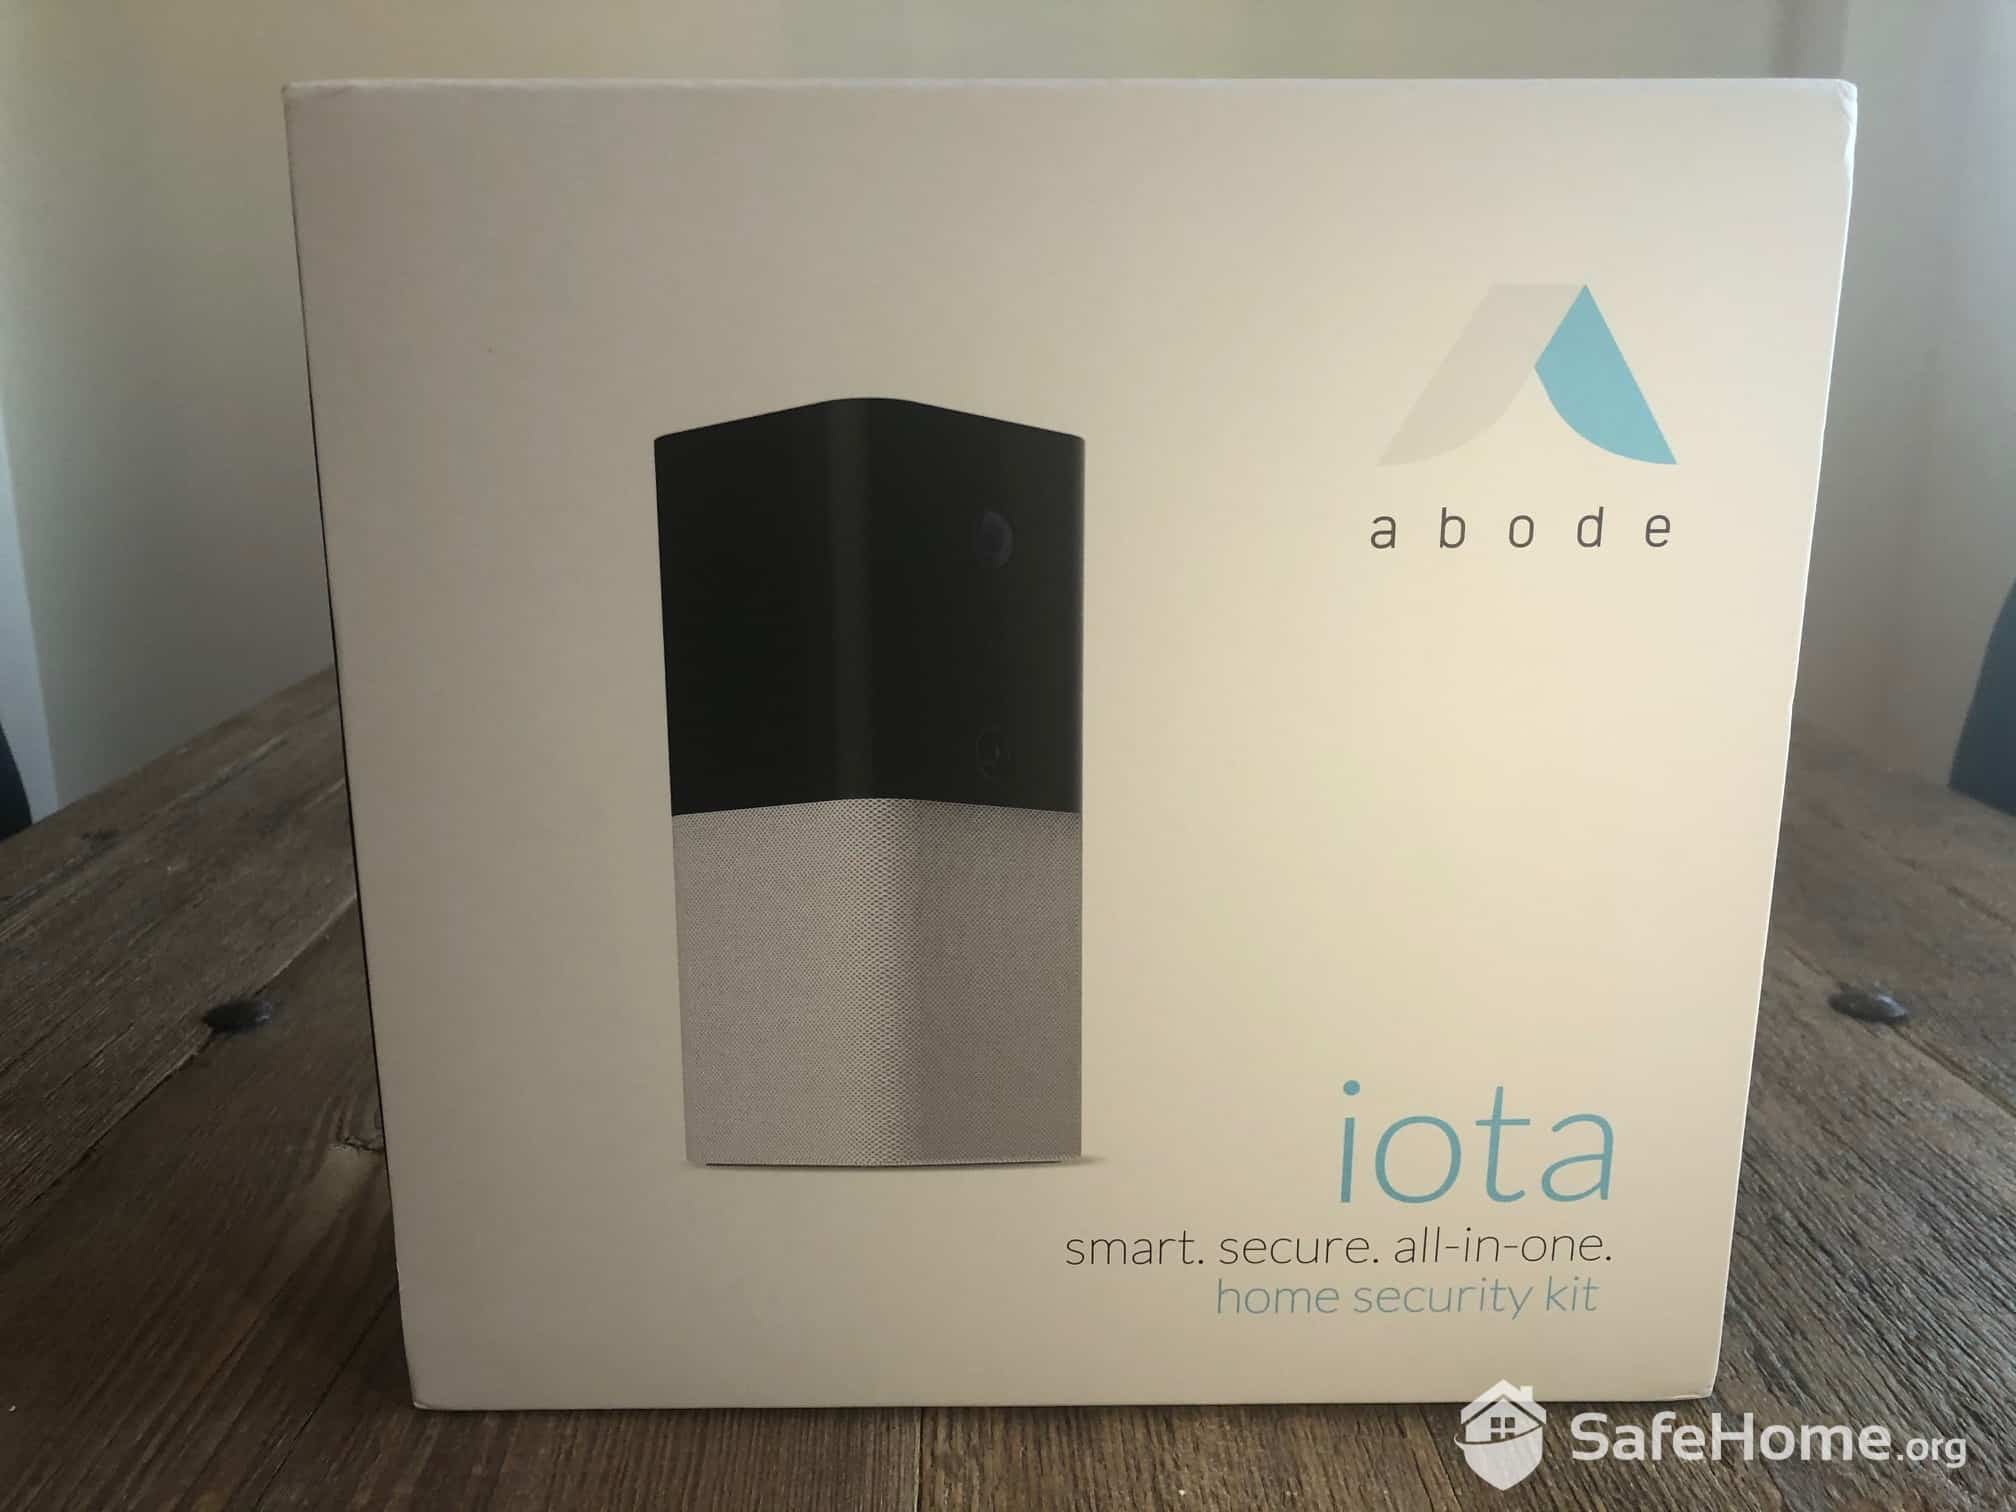 abode All-In-One Gateway Packaging